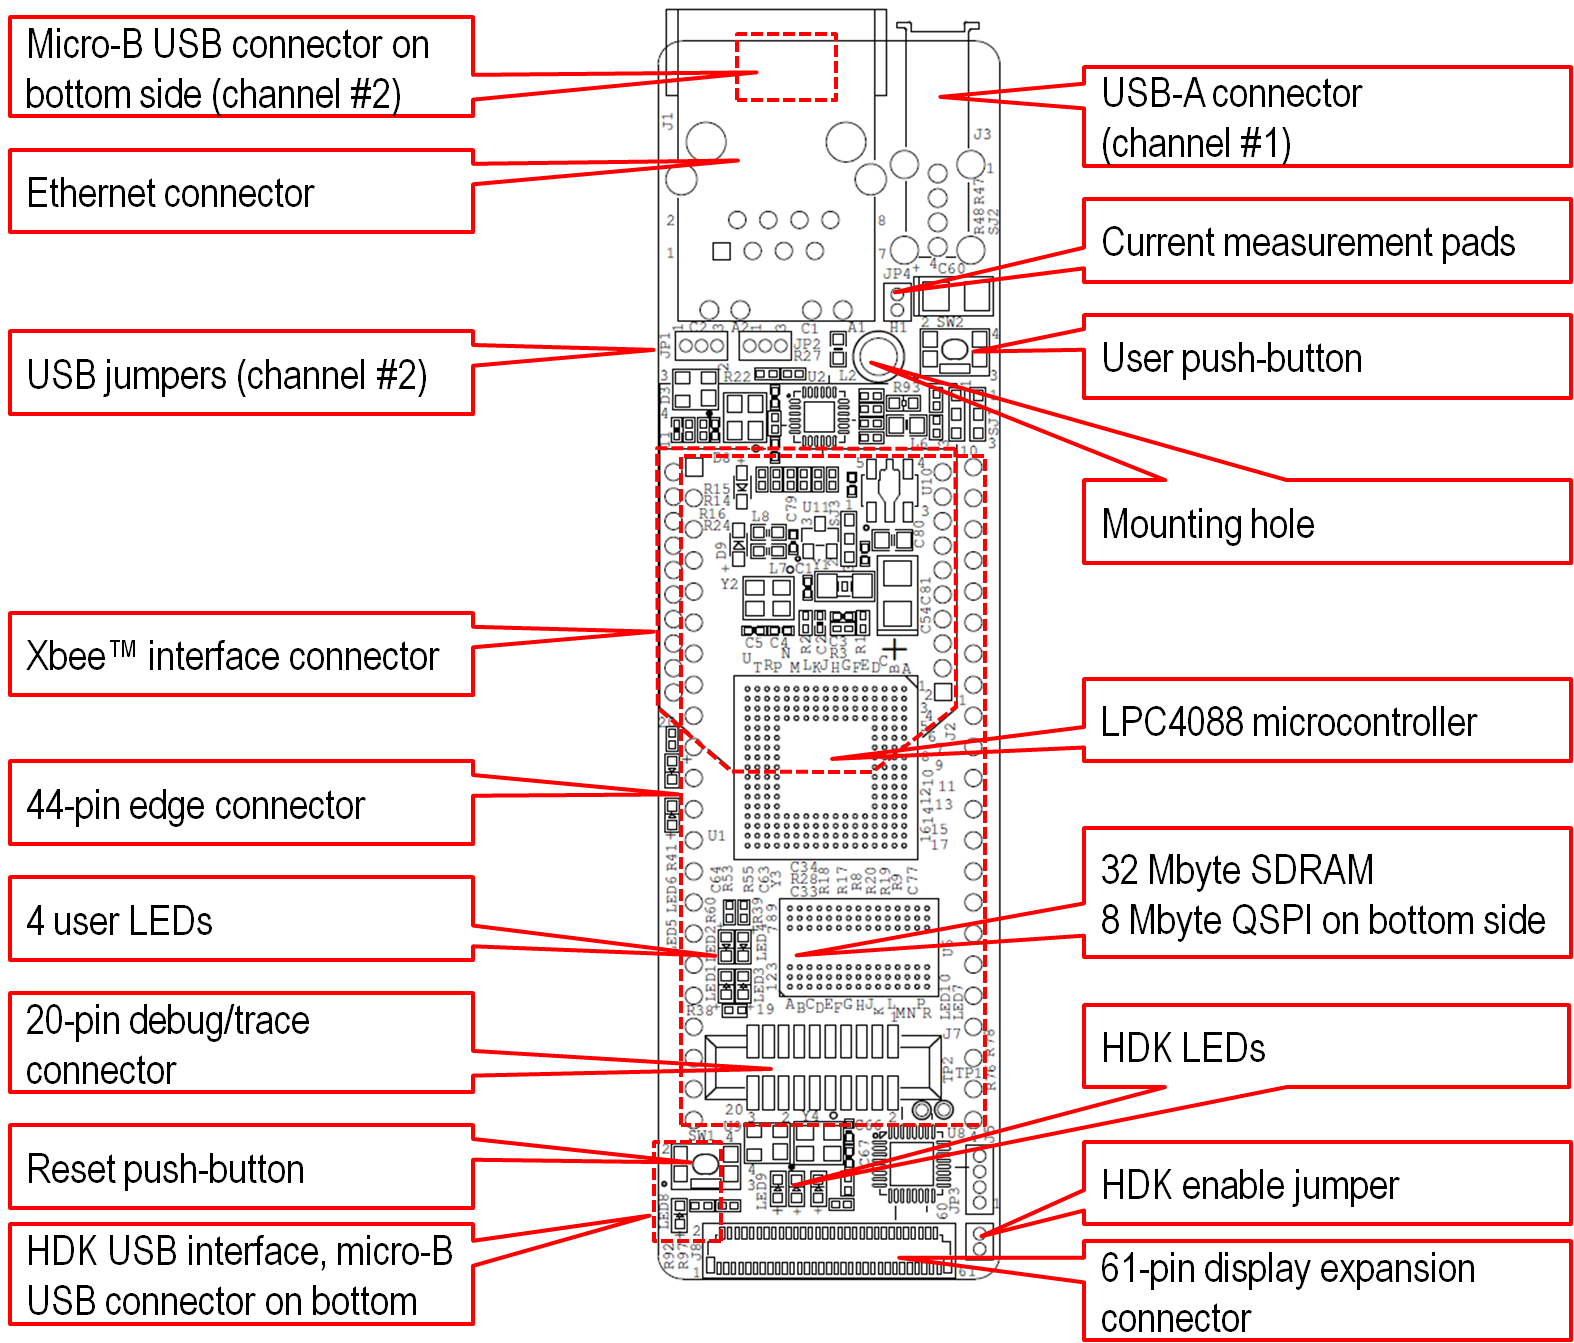 Lpc4088 Quickstart Board Hardware Information Mbed Rj45 Connector Pinout Diagram To Select If Usb Channel 2 Of The Shall Be Connected On Micro B Under Ethernet Or Pin